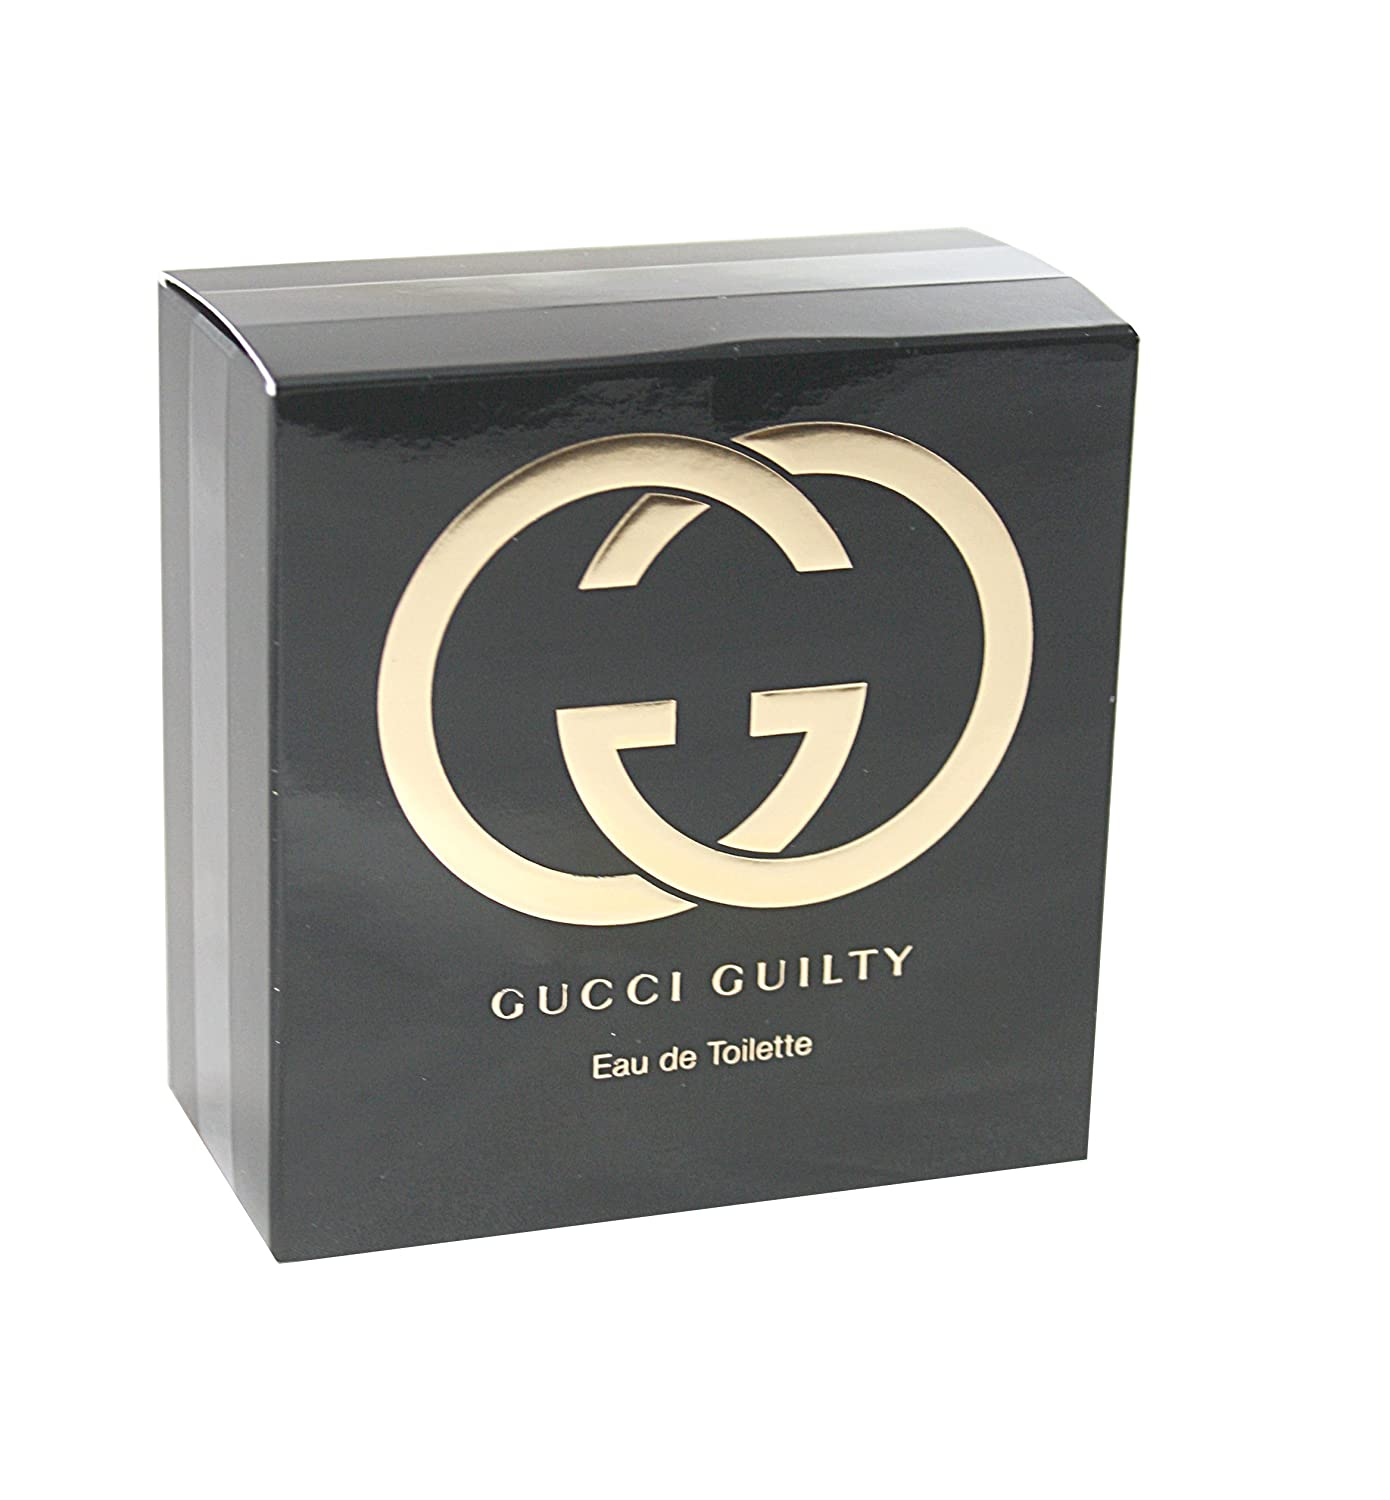 66b088ffd Gucci Guilty Eau de Toilette for Women - 50 ml: Amazon.co.uk: Beauty